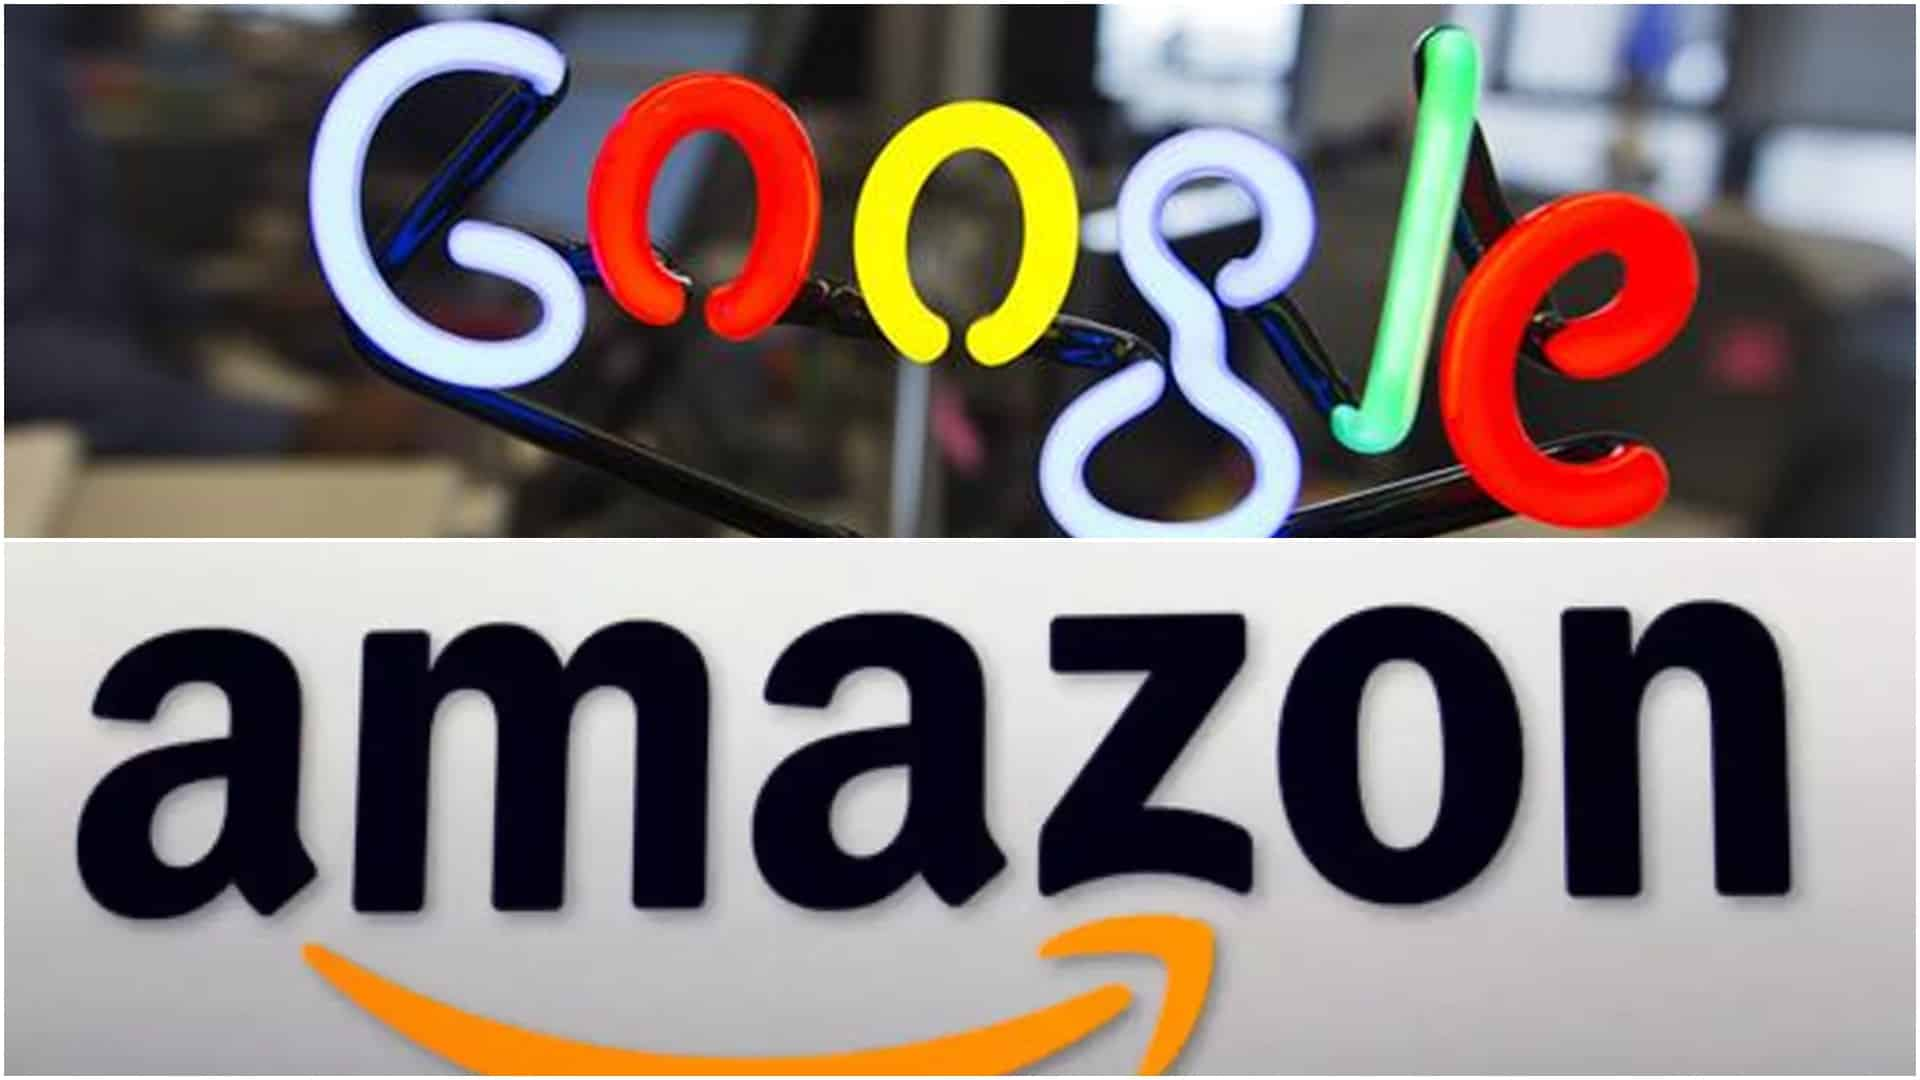 Google, Amazon and Microsoft take top spots in Randstad Employer Brand Research